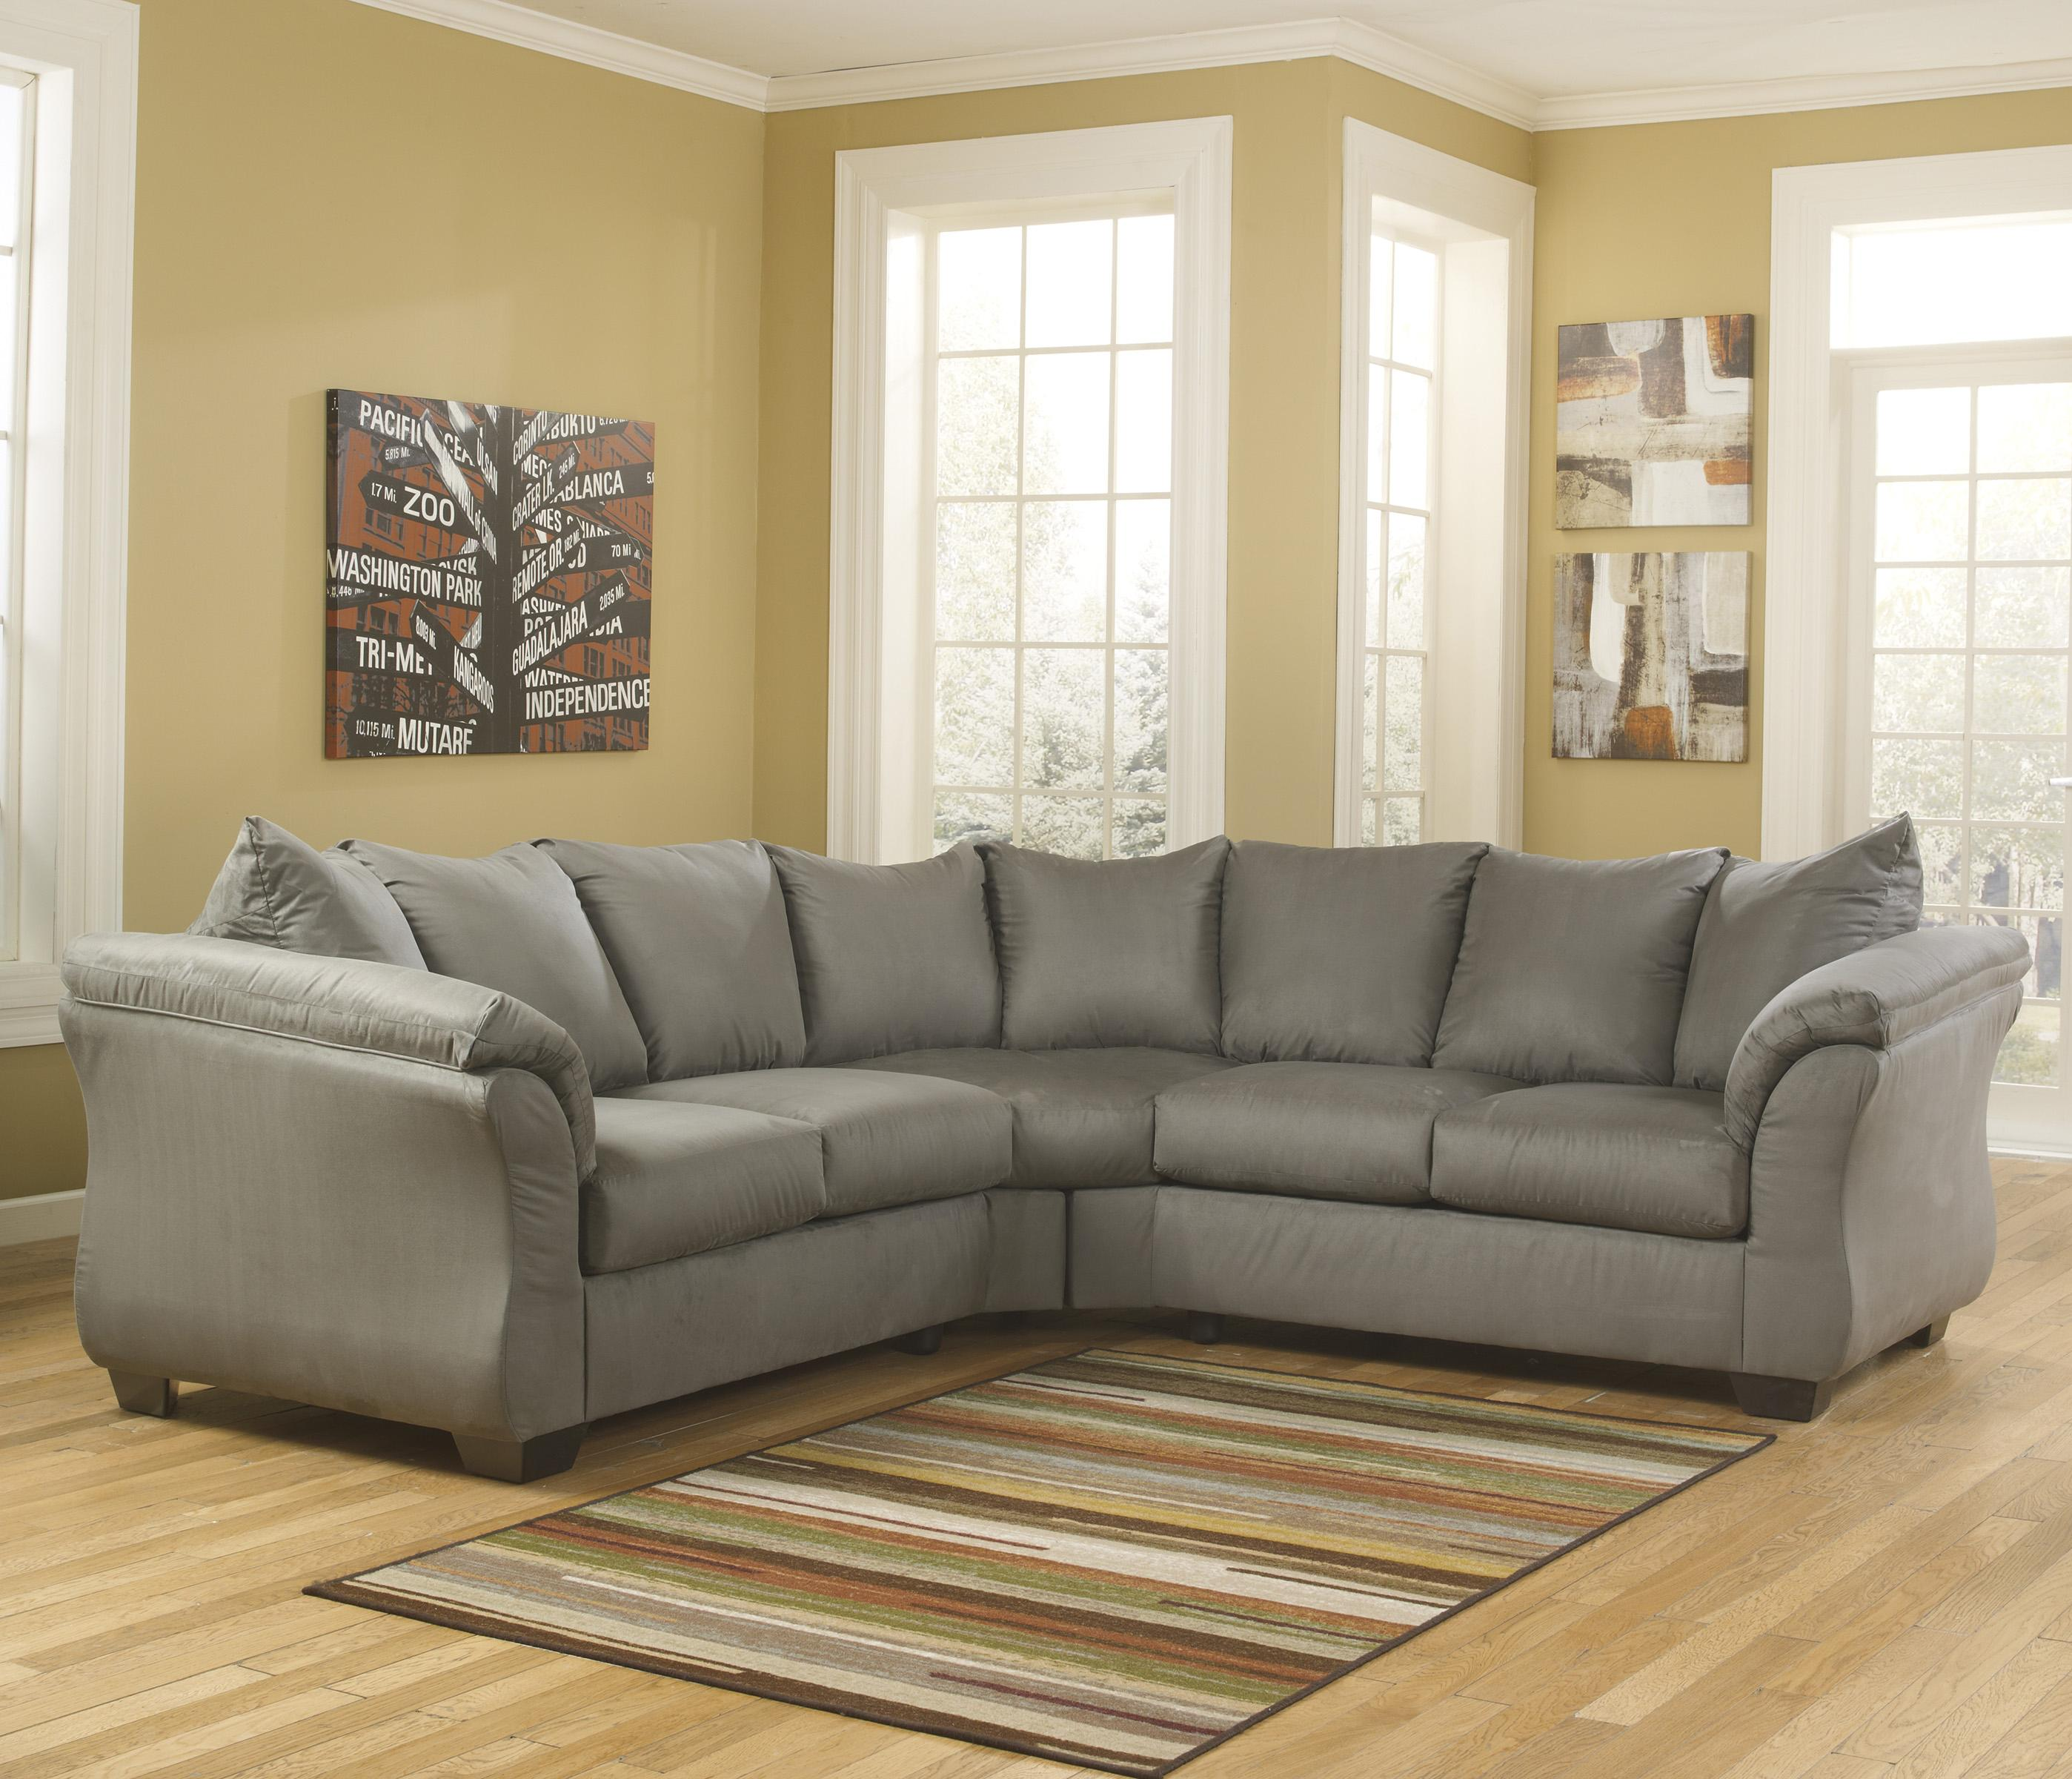 Signature Design by Ashley Darcy - Cobblestone Sectional Sofa - Item Number: 7500555+56